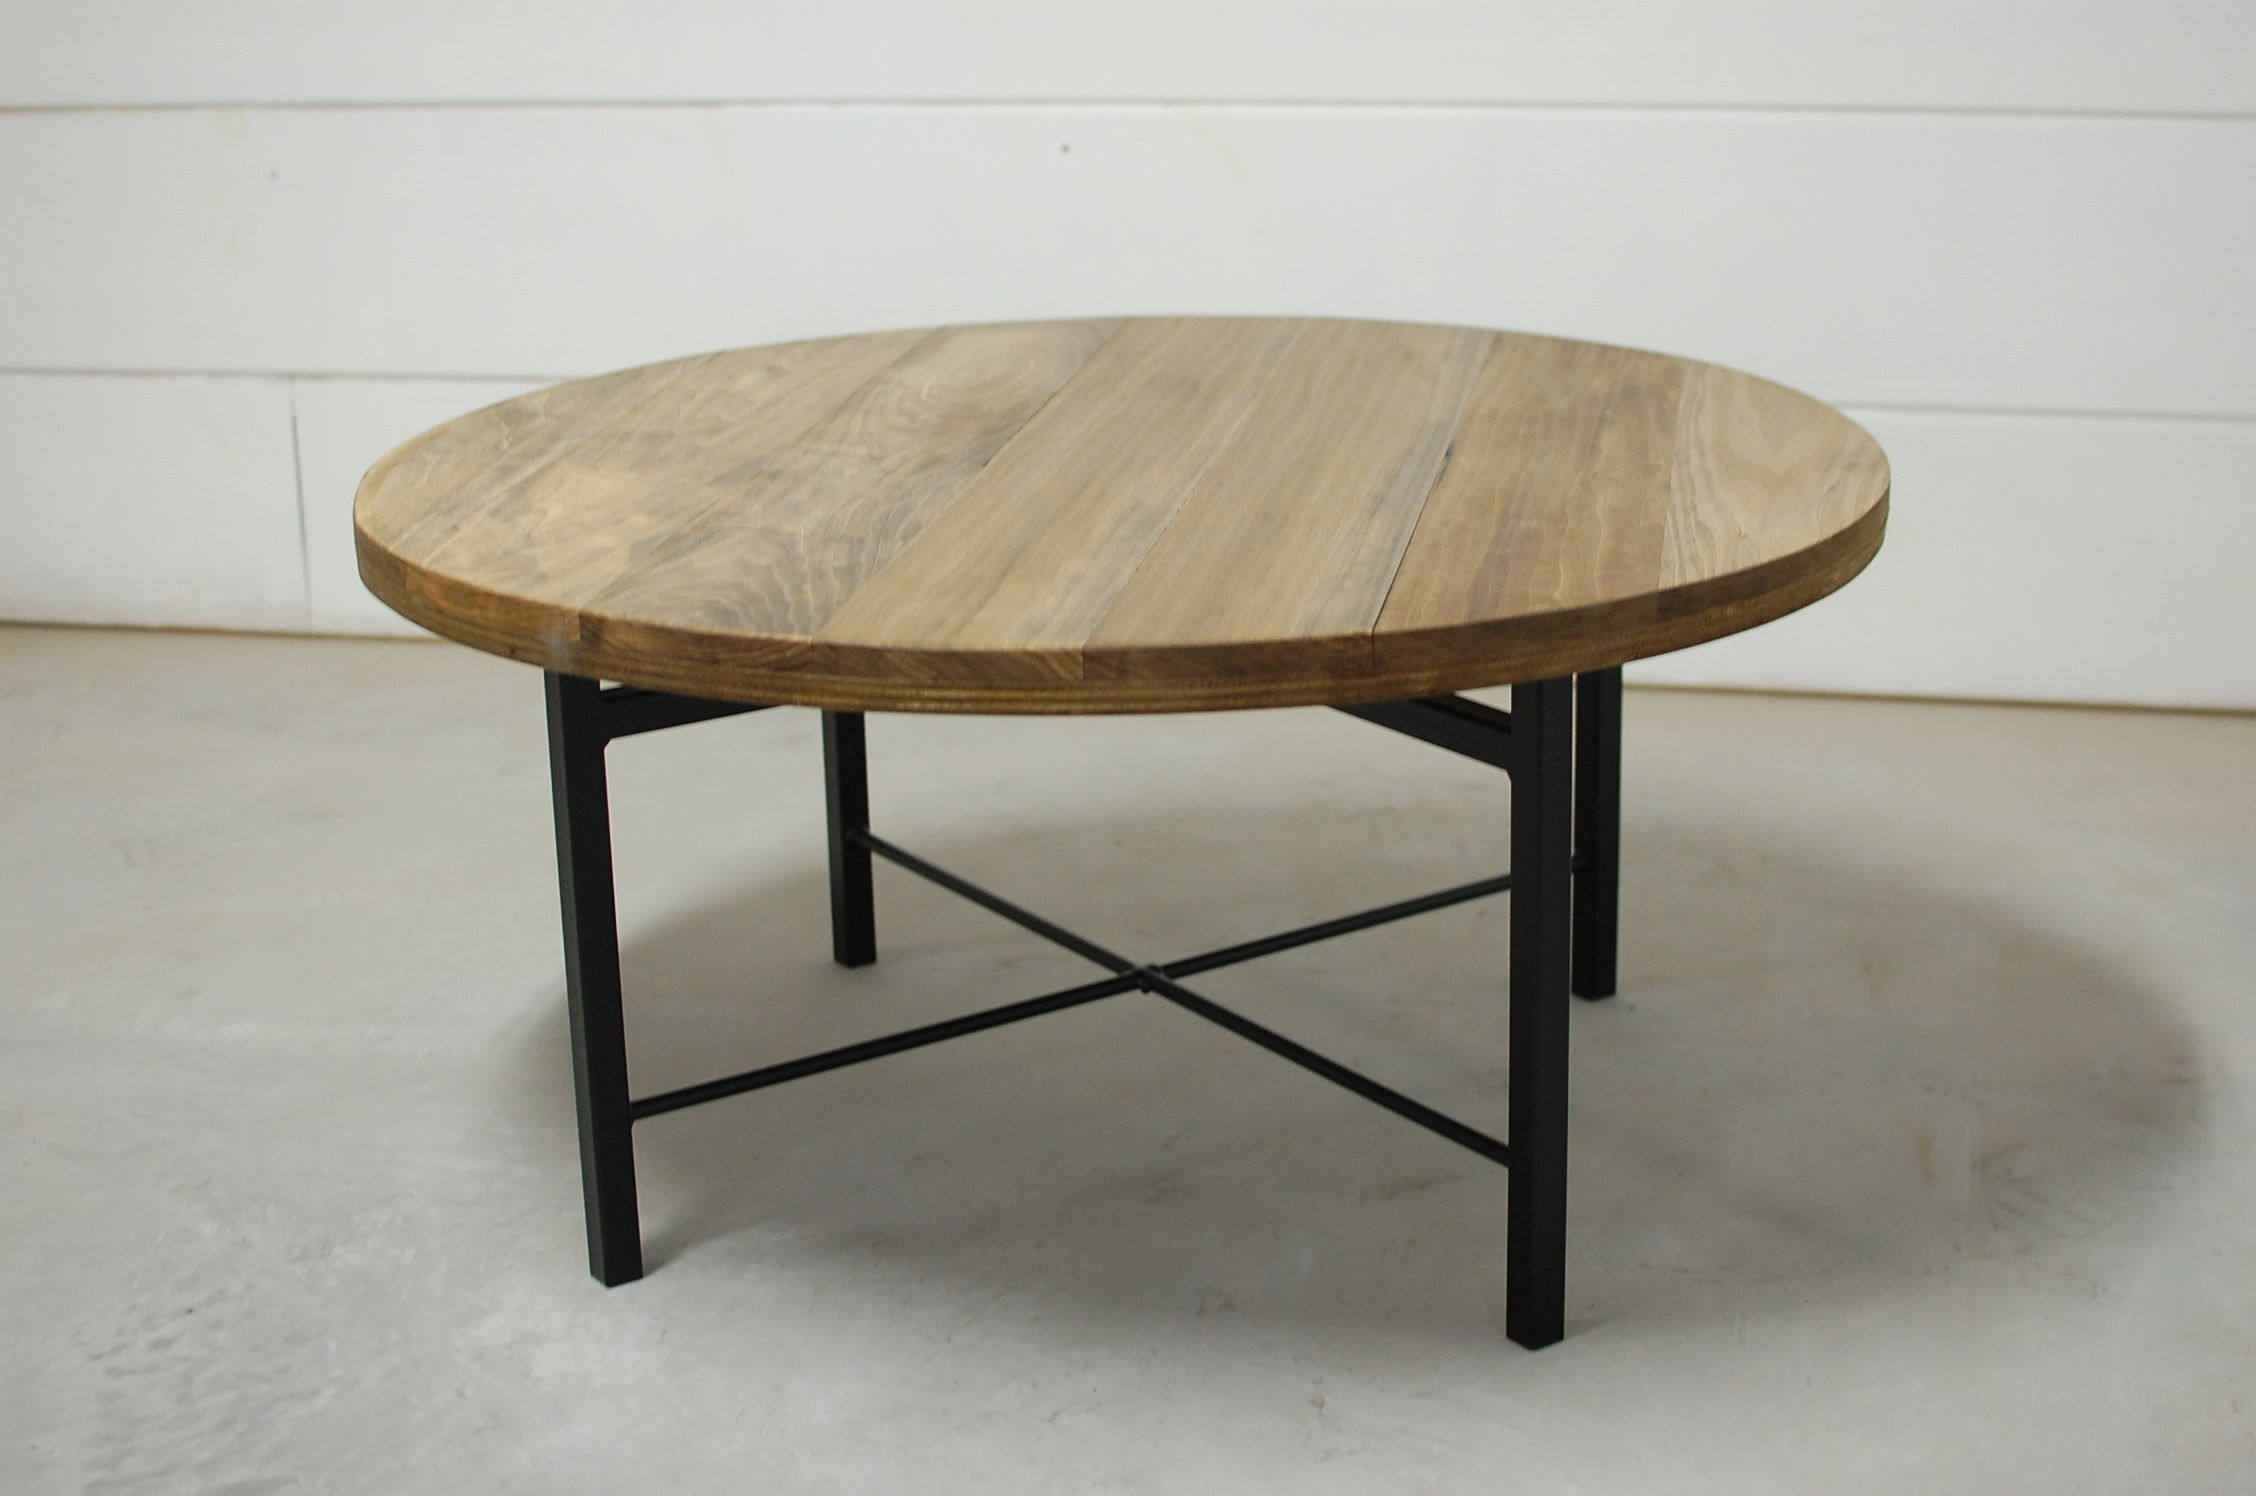 Wellington Round Industrial Coffee Table Southern Sunshine Coffee Table Round Industrial Coffee Table Natural Wood Furniture [ 1496 x 2256 Pixel ]